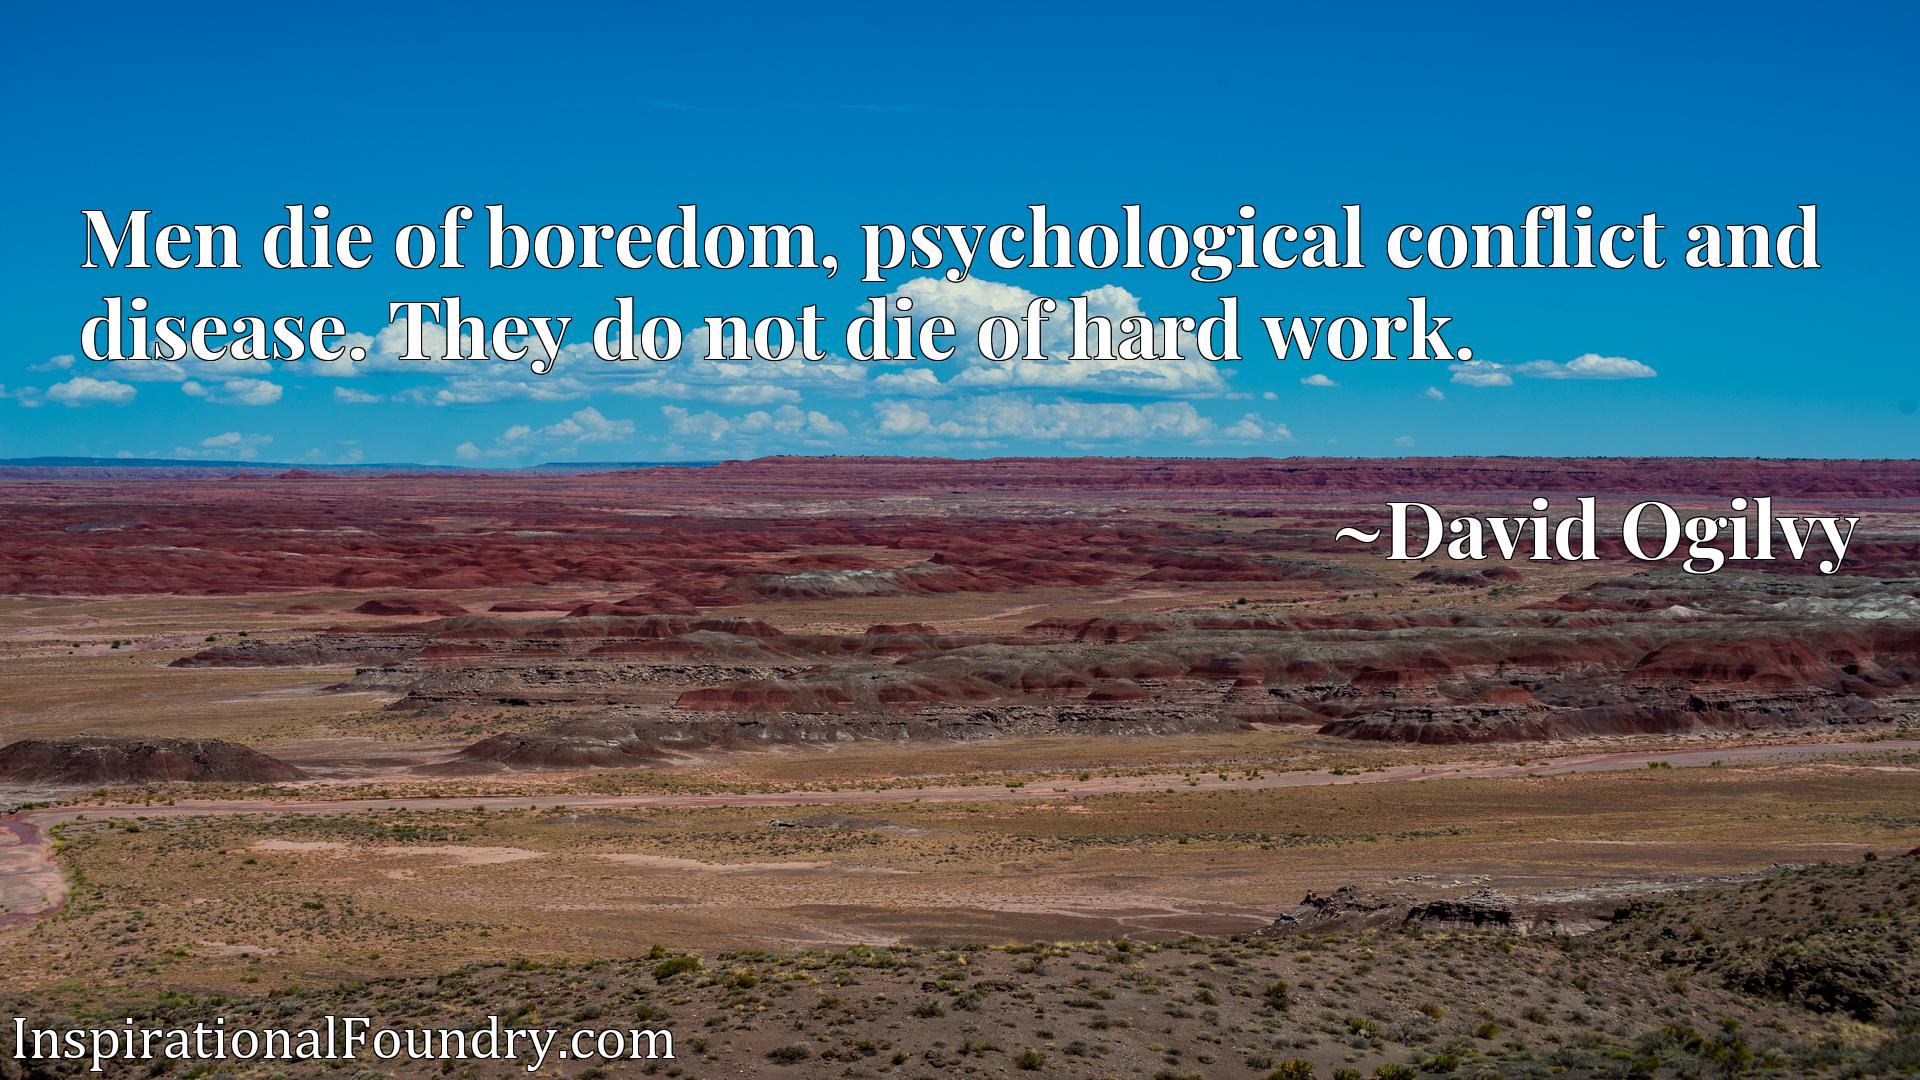 Men die of boredom, psychological conflict and disease. They do not die of hard work.